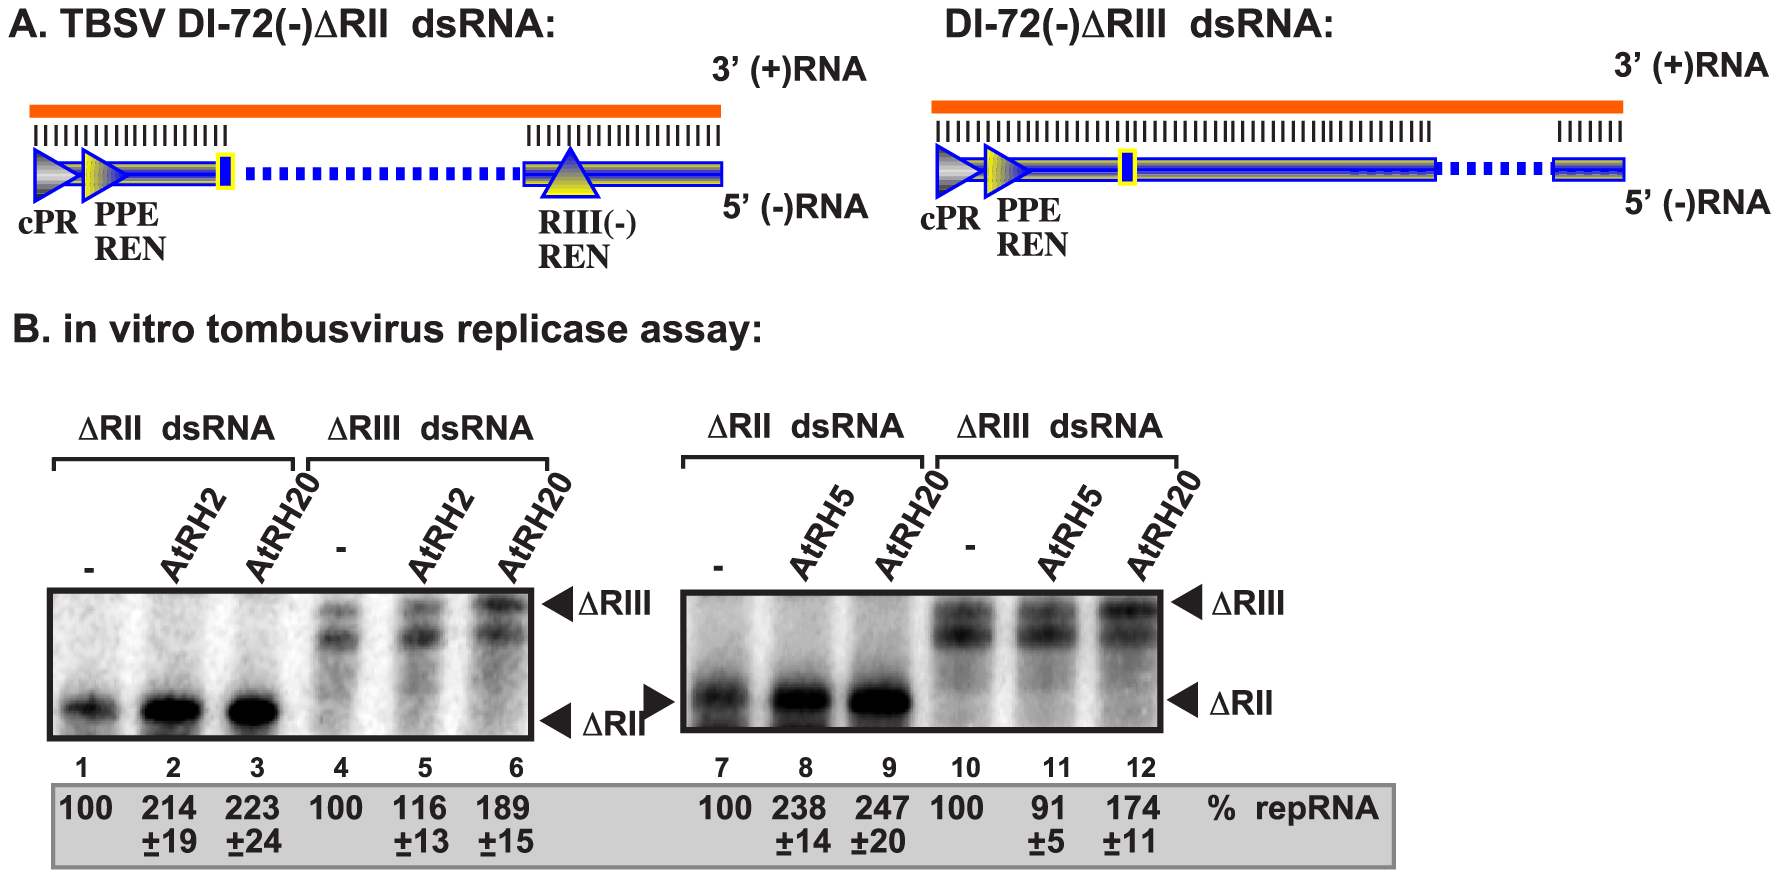 AtRH2 and AtRH5 promote plus-strand synthesis on partial dsRNA templates by the affinity-purified tombusvirus replicase.